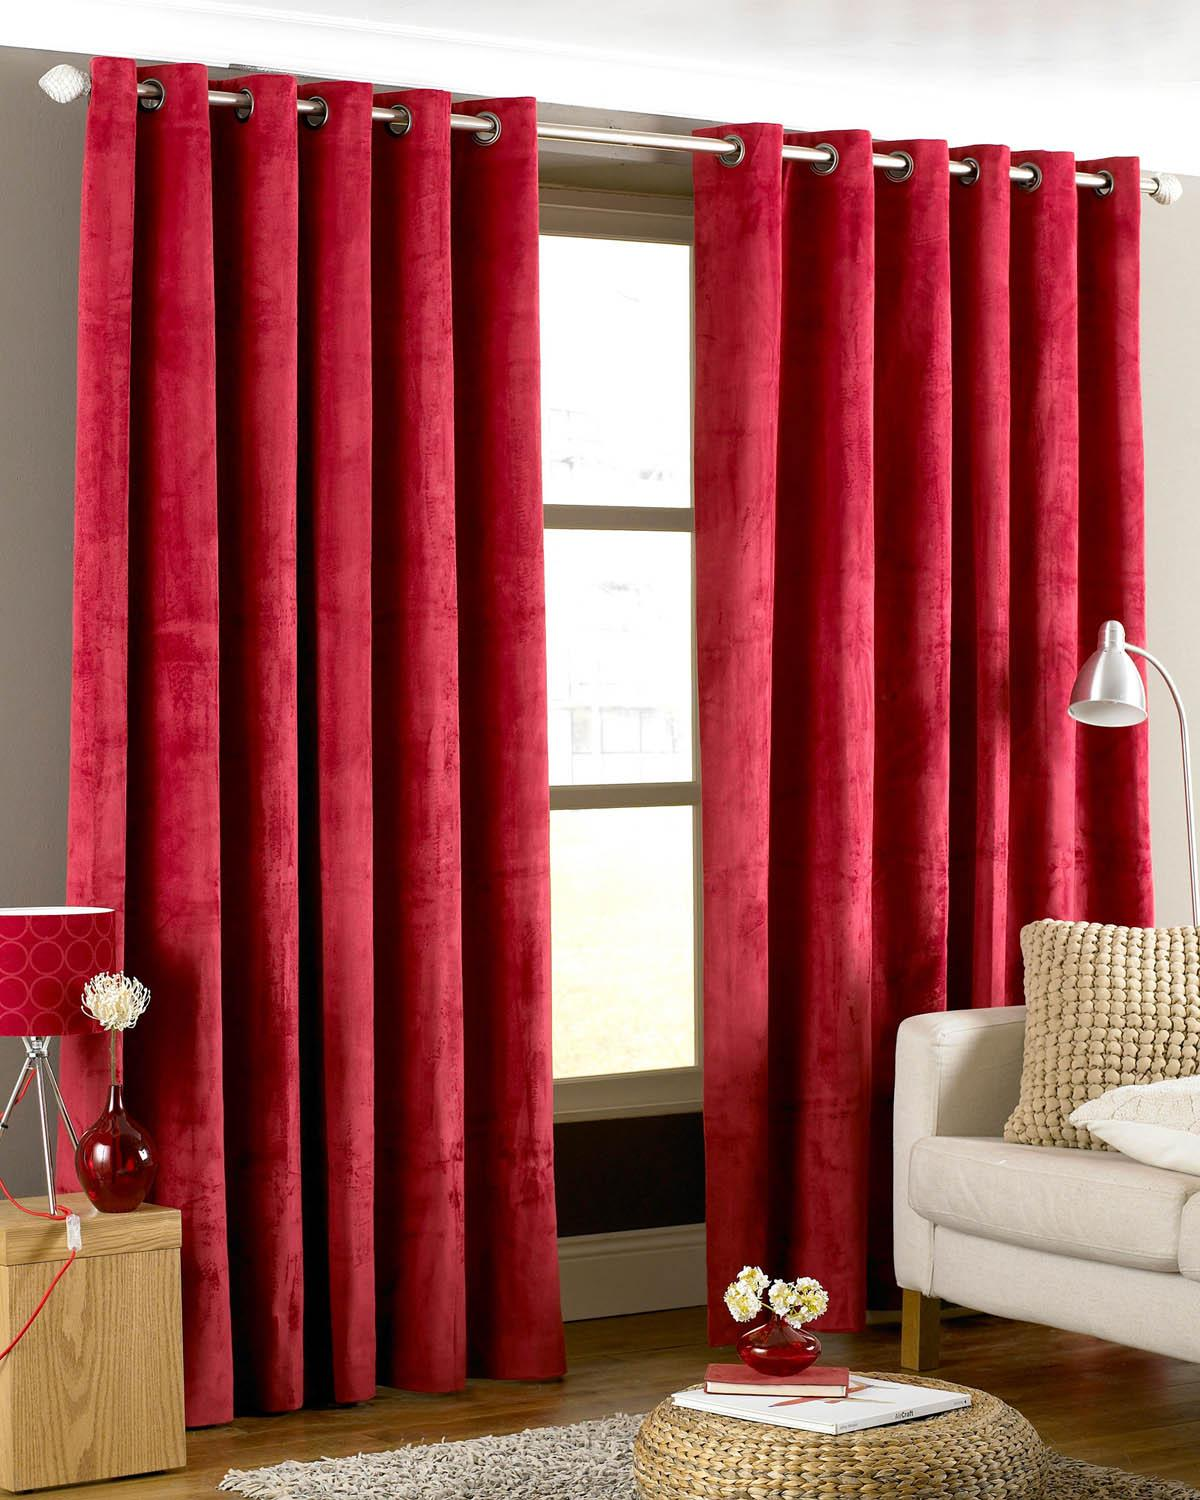 Red and cream window curtains - Emperor Ready Made Faux Suede Lined Eyelet Curtains